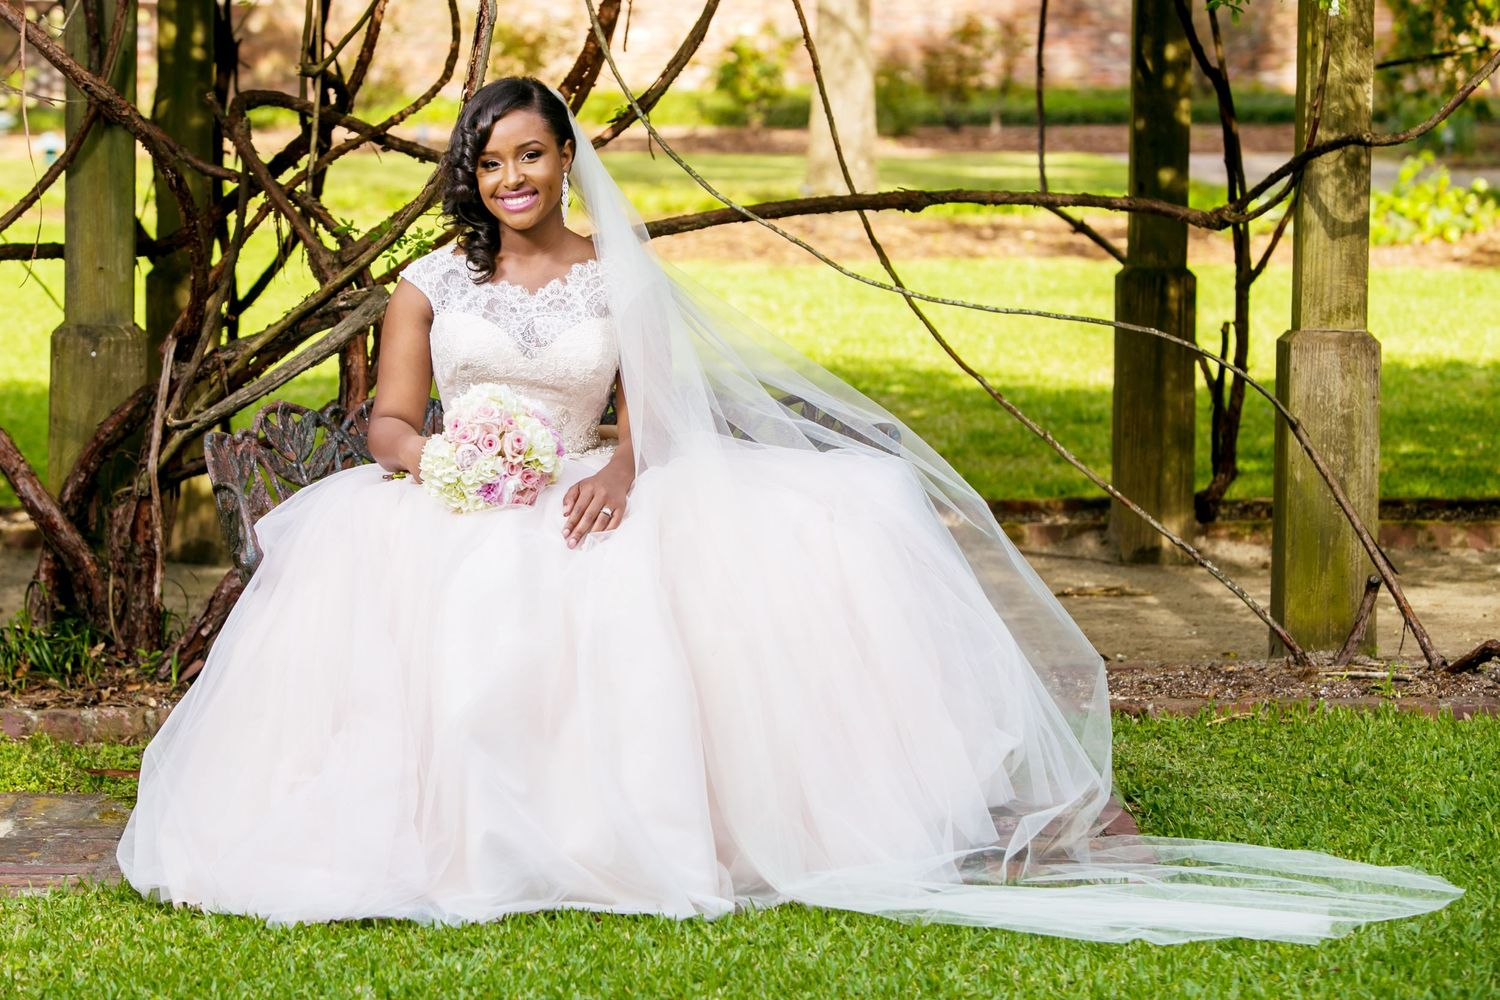 Lace House SC Governor's Mansion bridal portrait by Columbia, SC, Wedding Photographer Jeff Blake